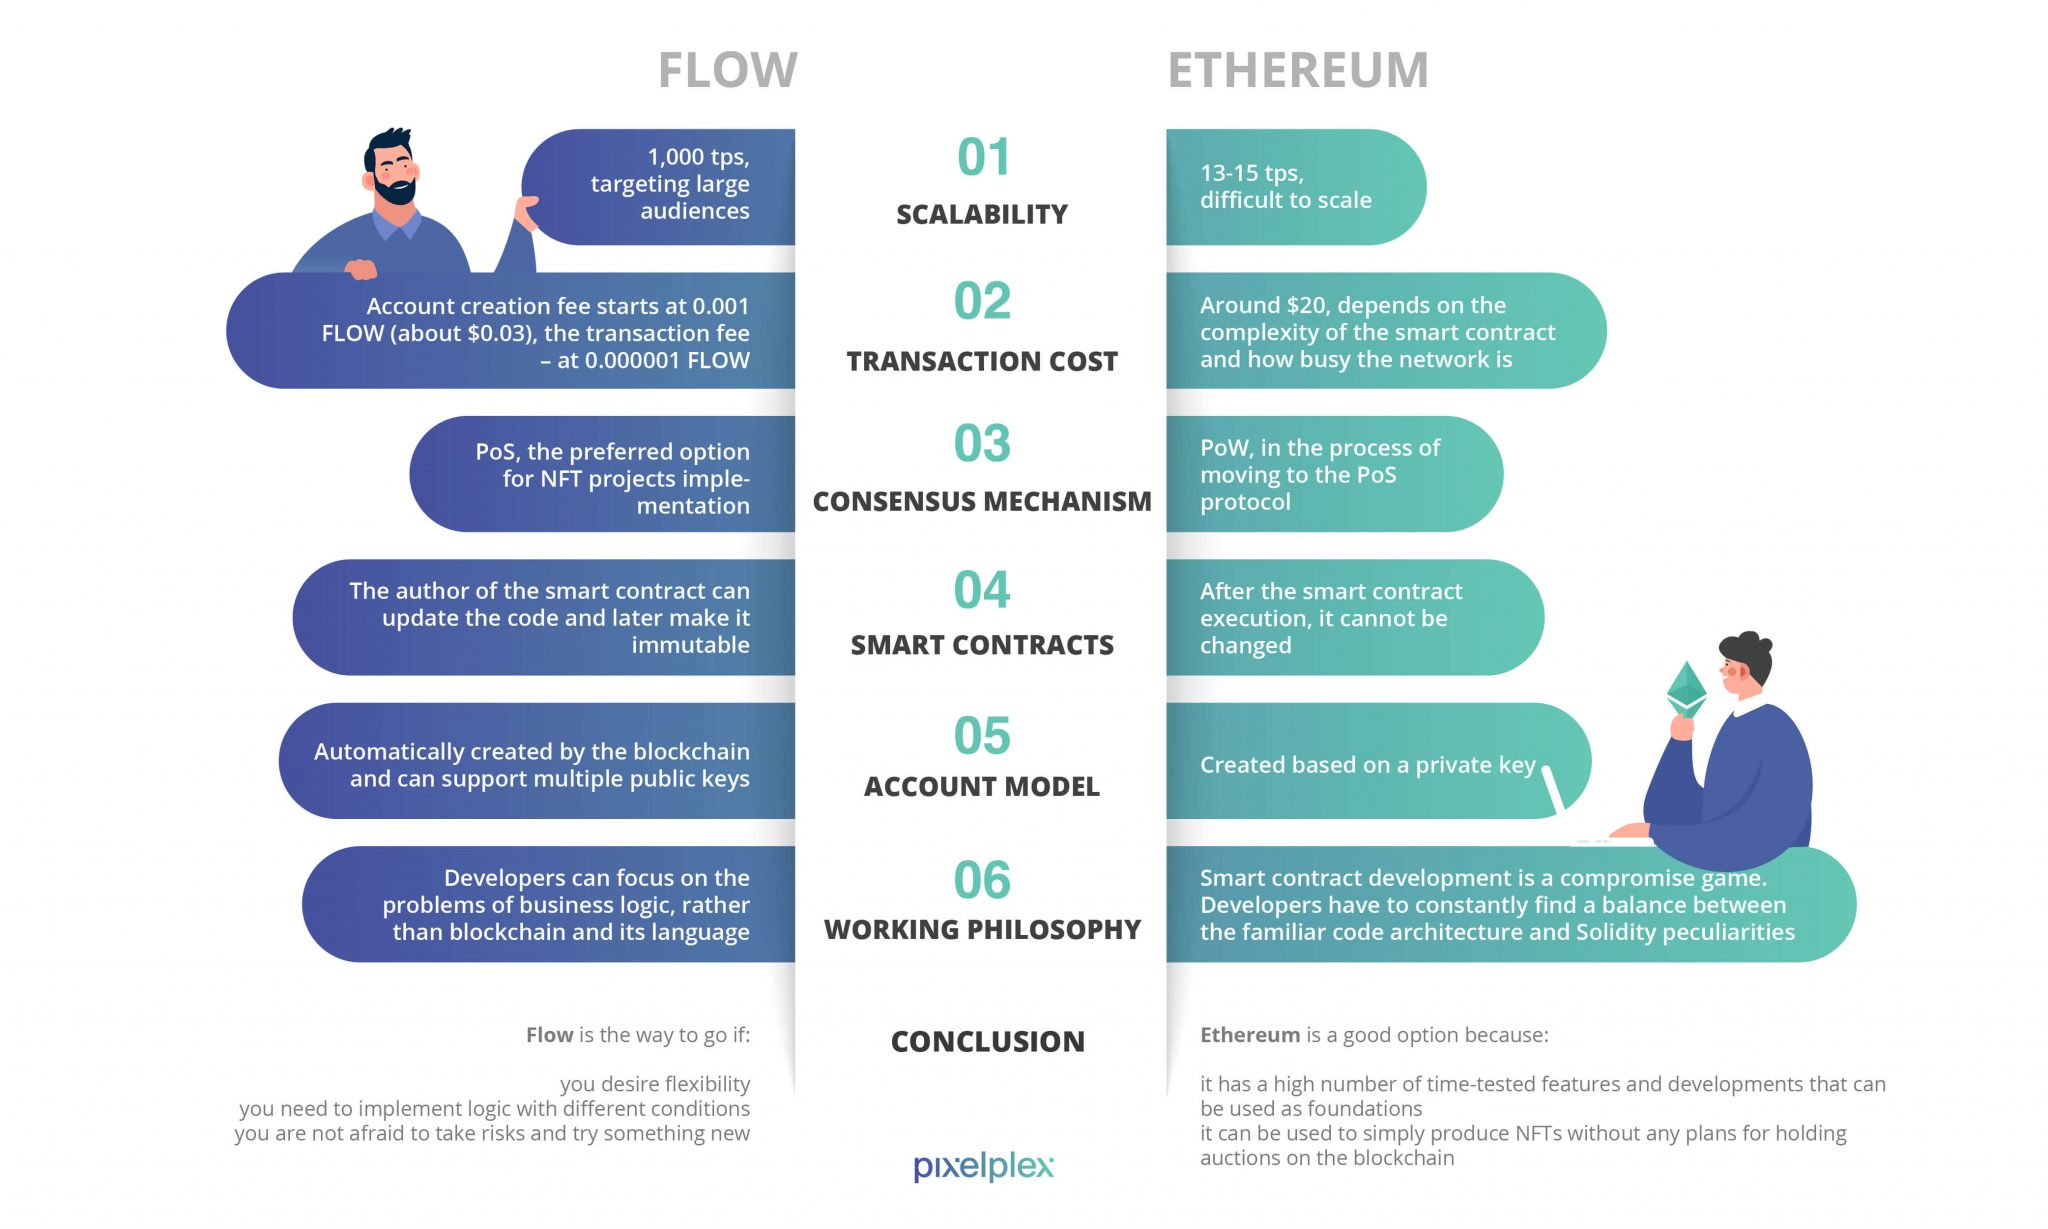 The comparison table of Flow and Ethereum blockchains